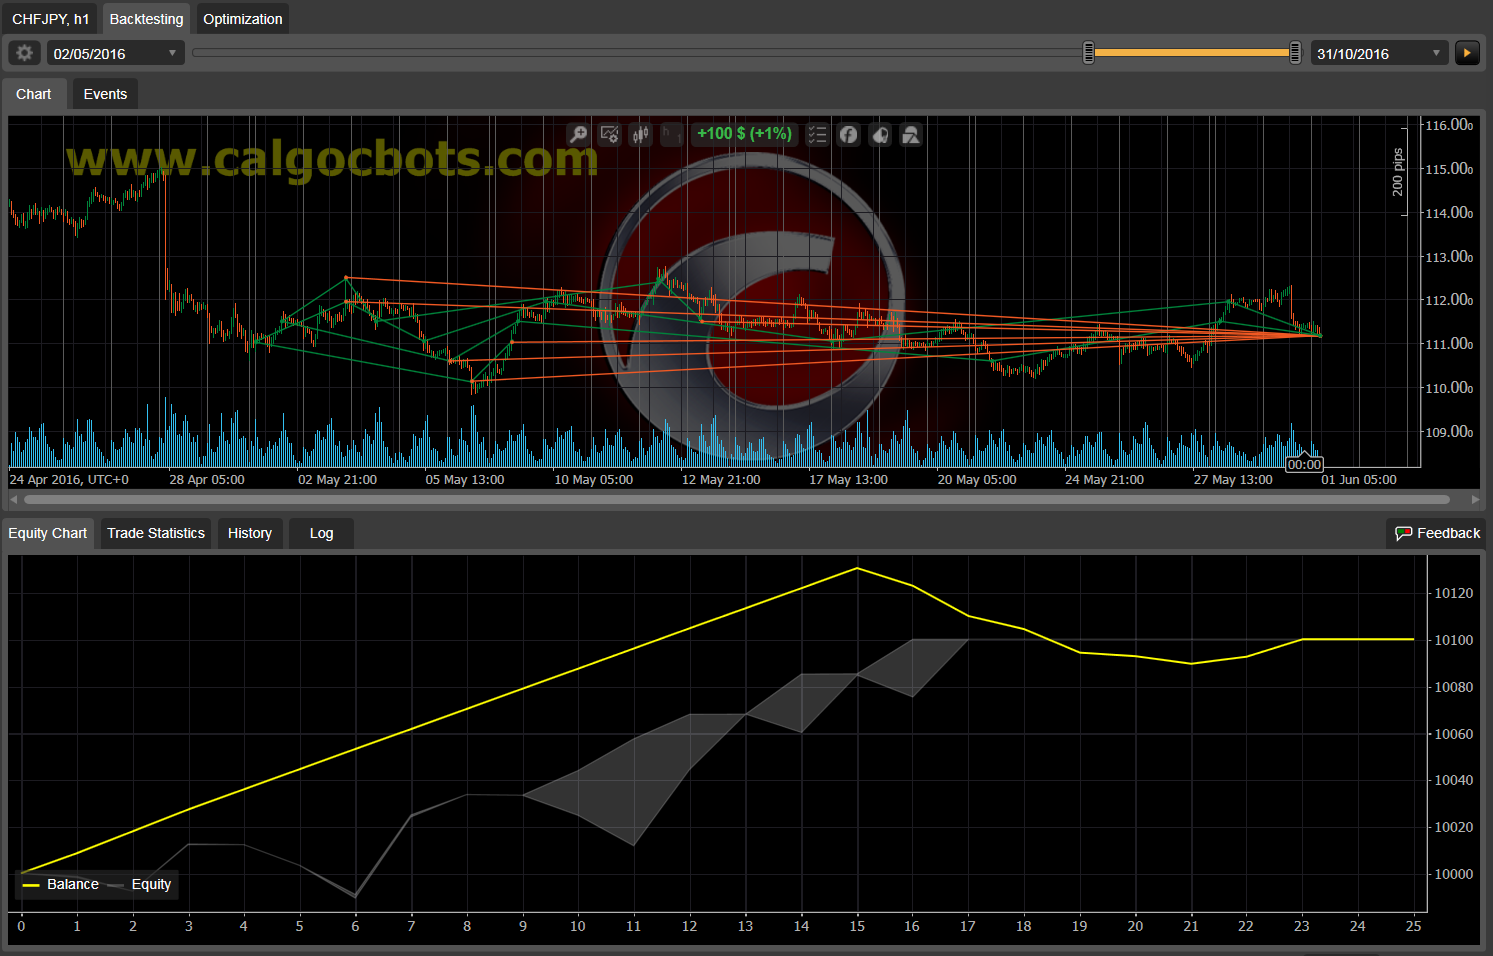 Dual Grid Hedge CHF JPY 1h cAlgo cBots cTrader 1k 100 45 90 - 10